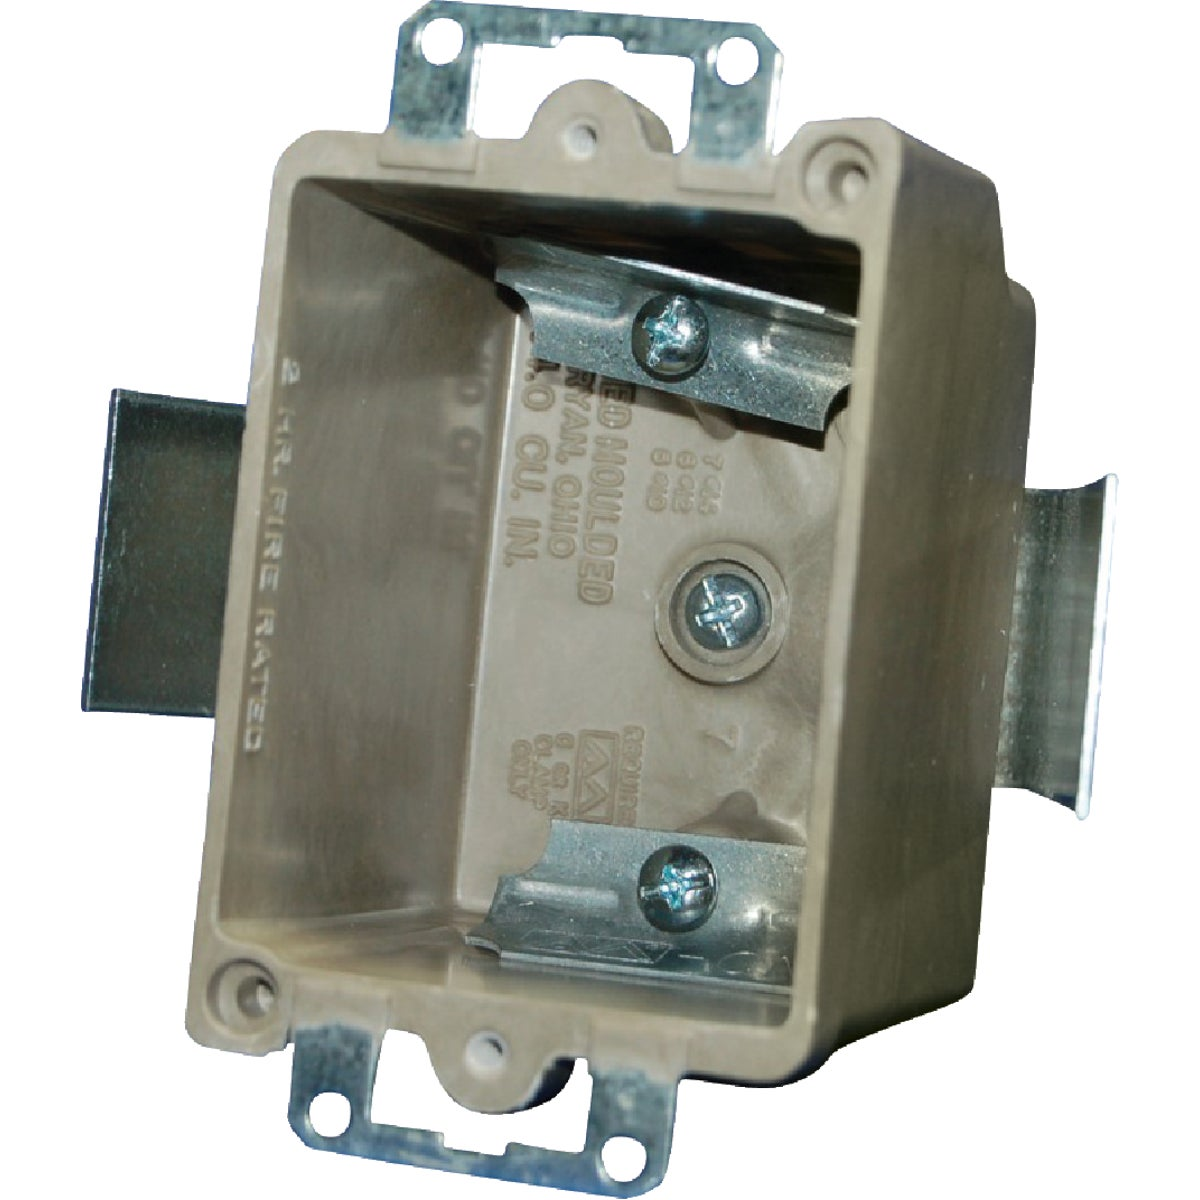 FIBERGLASS SWITCH BOX - H9331-ESK by Allied Moulded